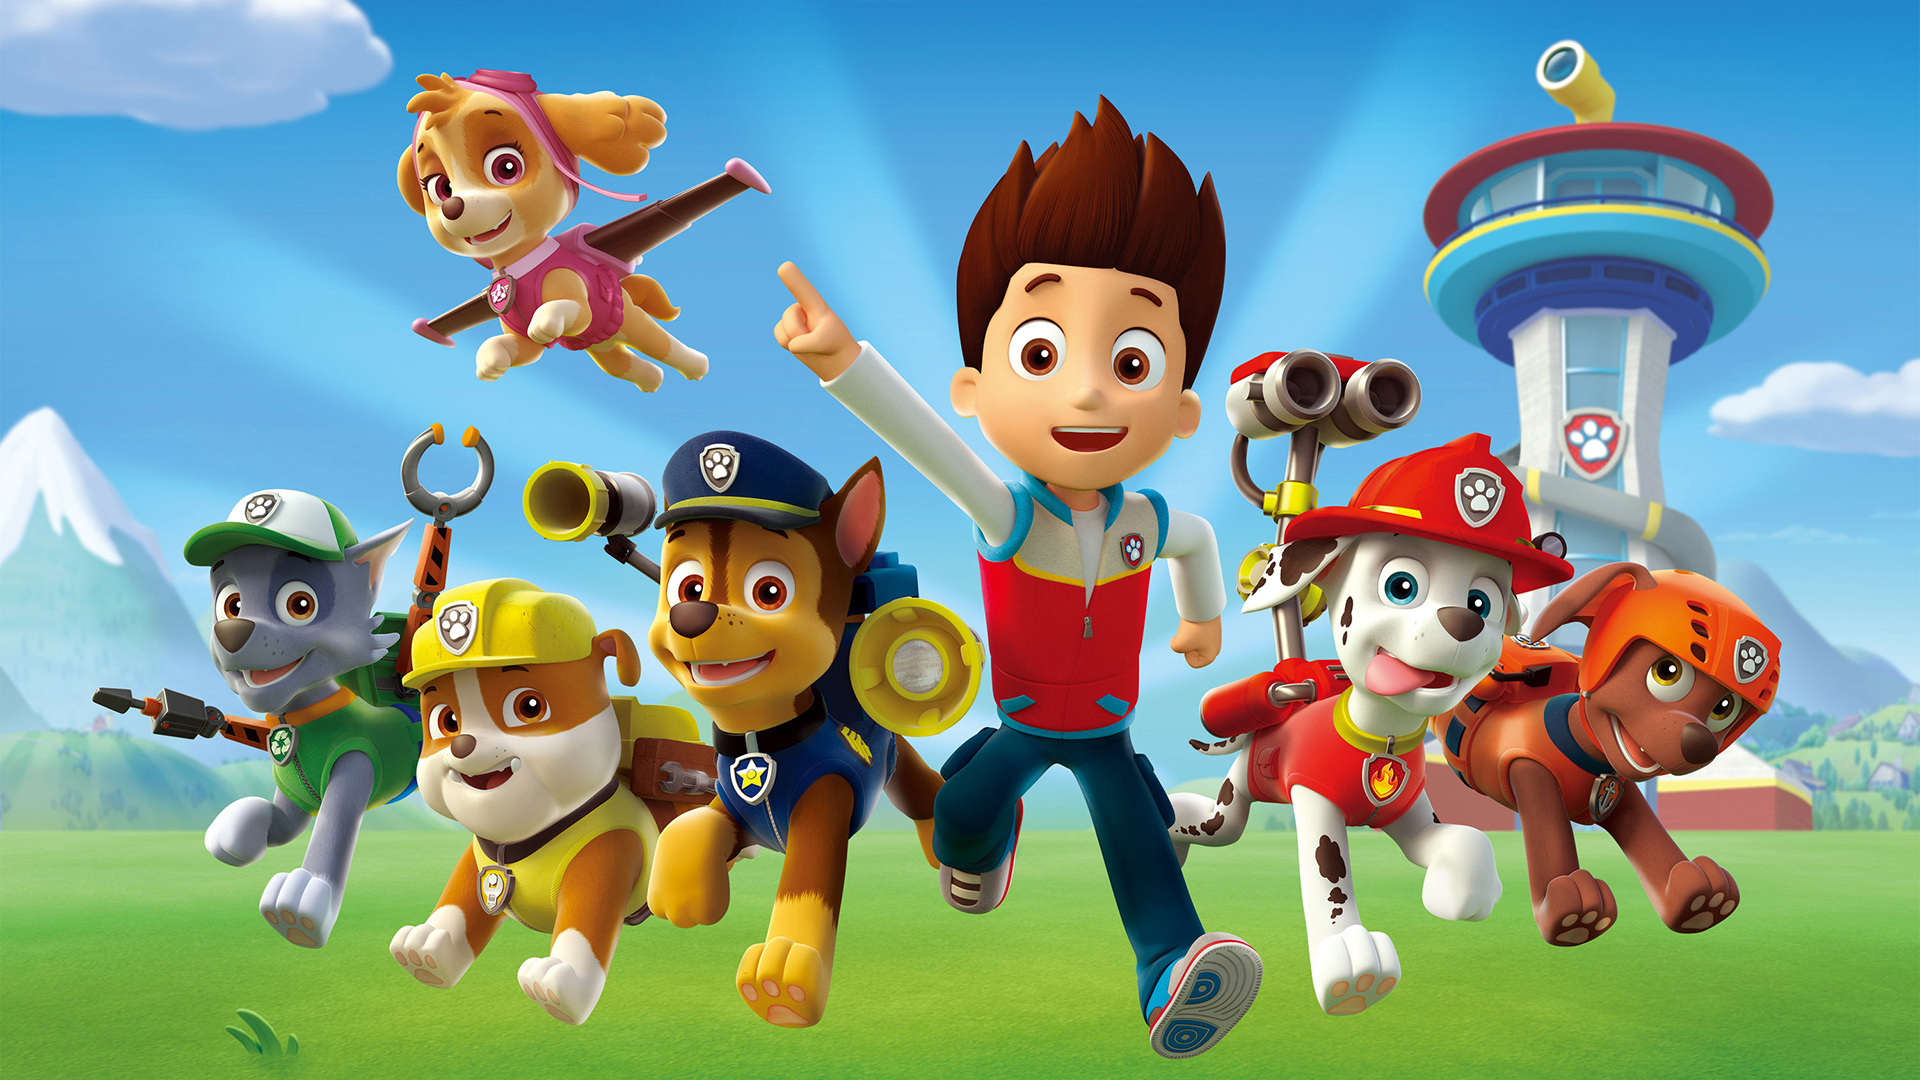 Paw patrol background clipart graphic free library paw patrol wallpaper graphic free library